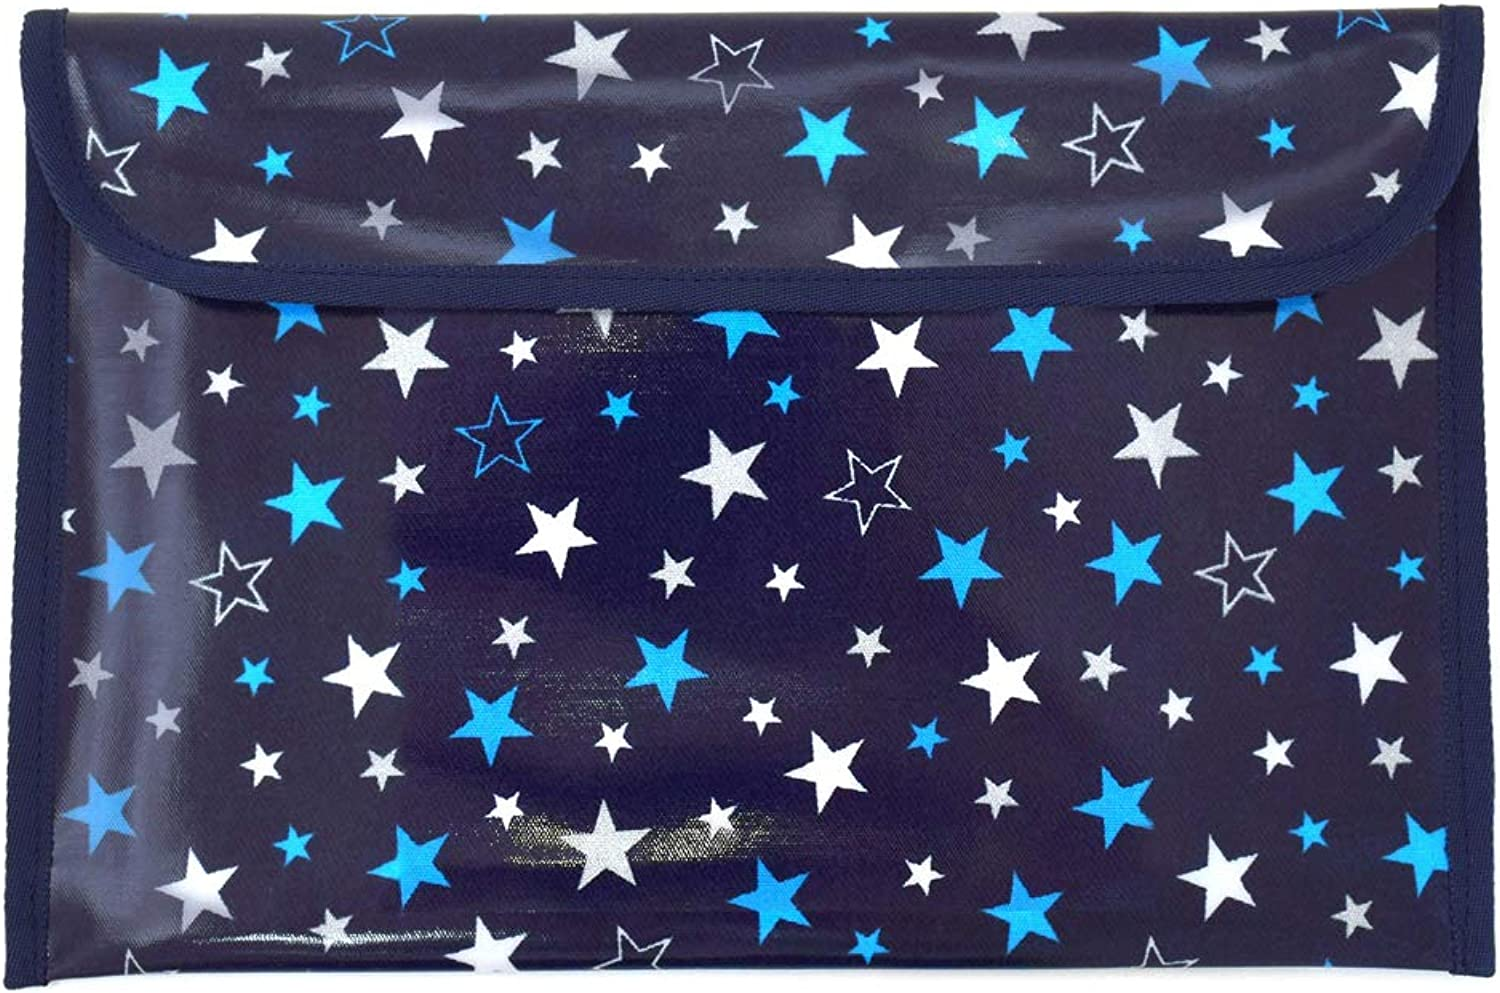 Organized contact smart bag brilliant star navy bluee made in Japan N4008000 (japan import)